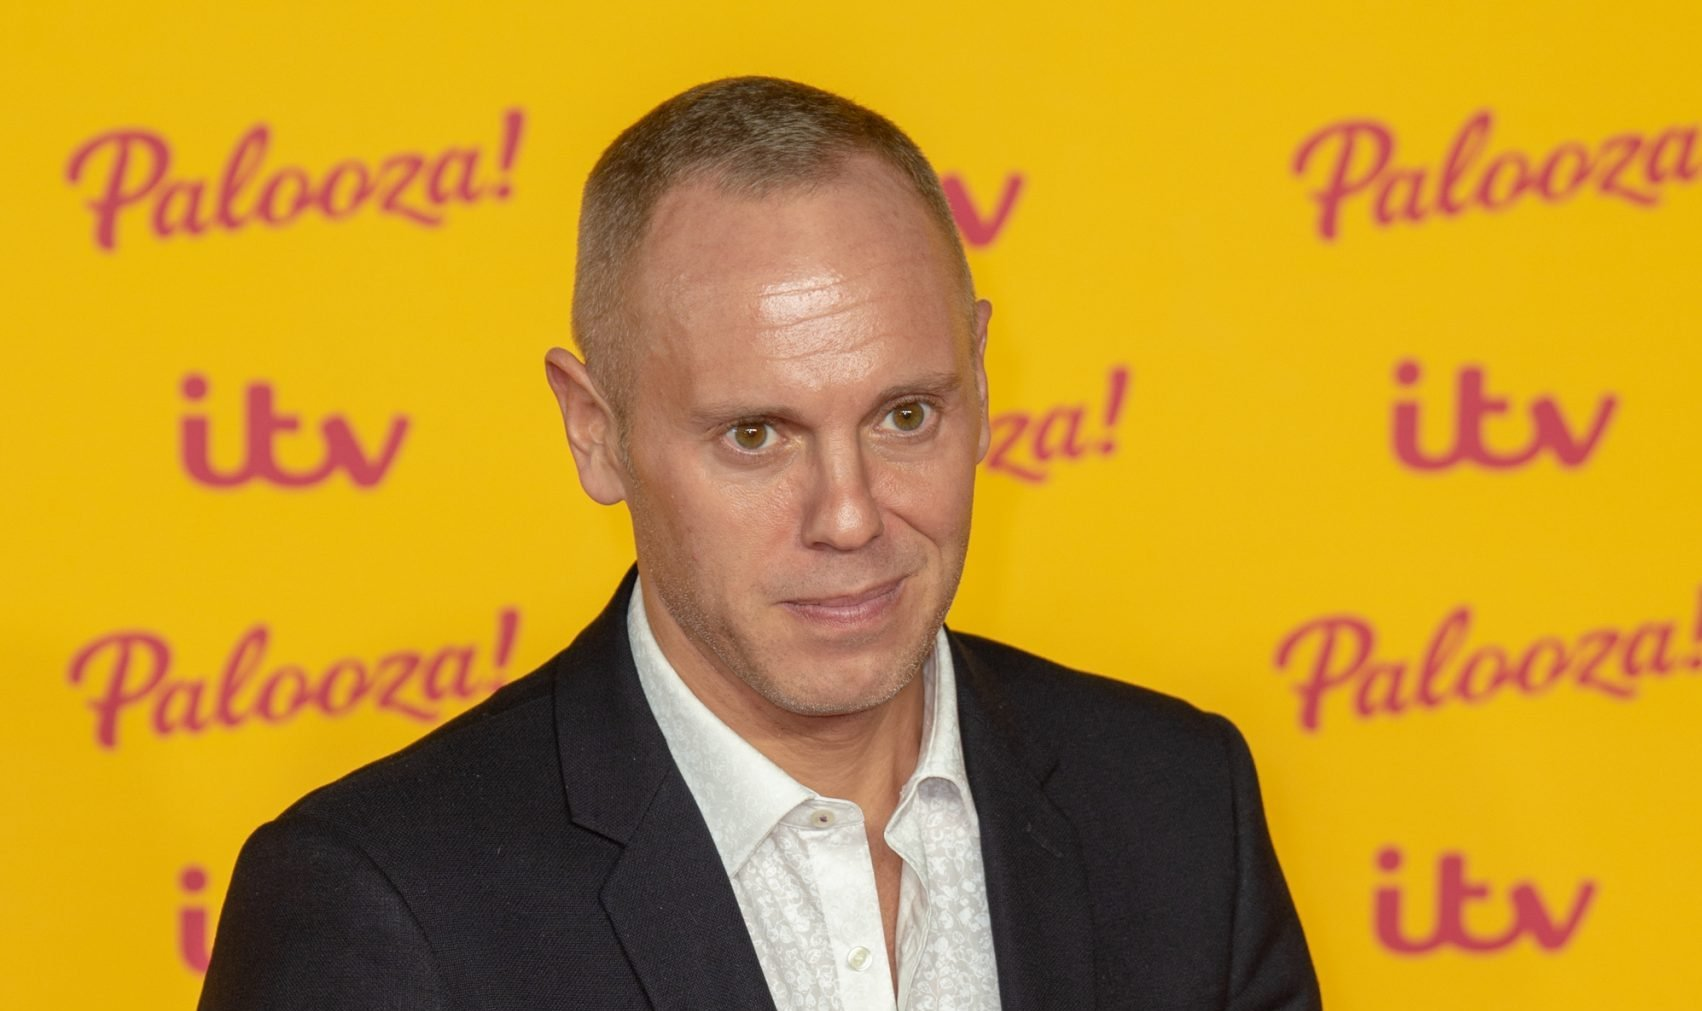 Judge Rinder urges everyone to find some joy in their day as he mourns death of grandfather from coronavirus